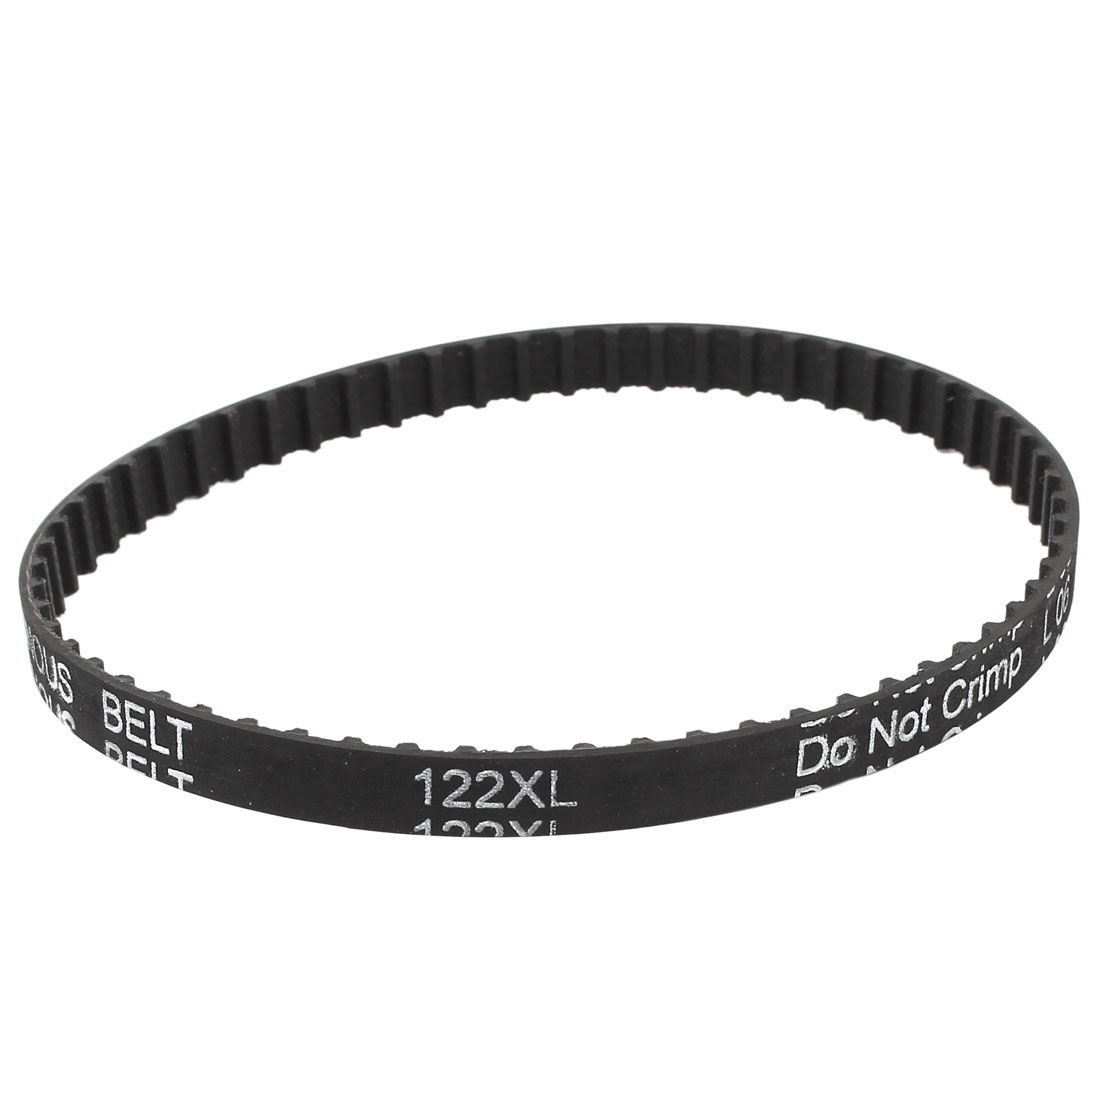 122XL 031 61T 7.9mm Width 5.08mm Pitch Cogged Industrial Timing Belt